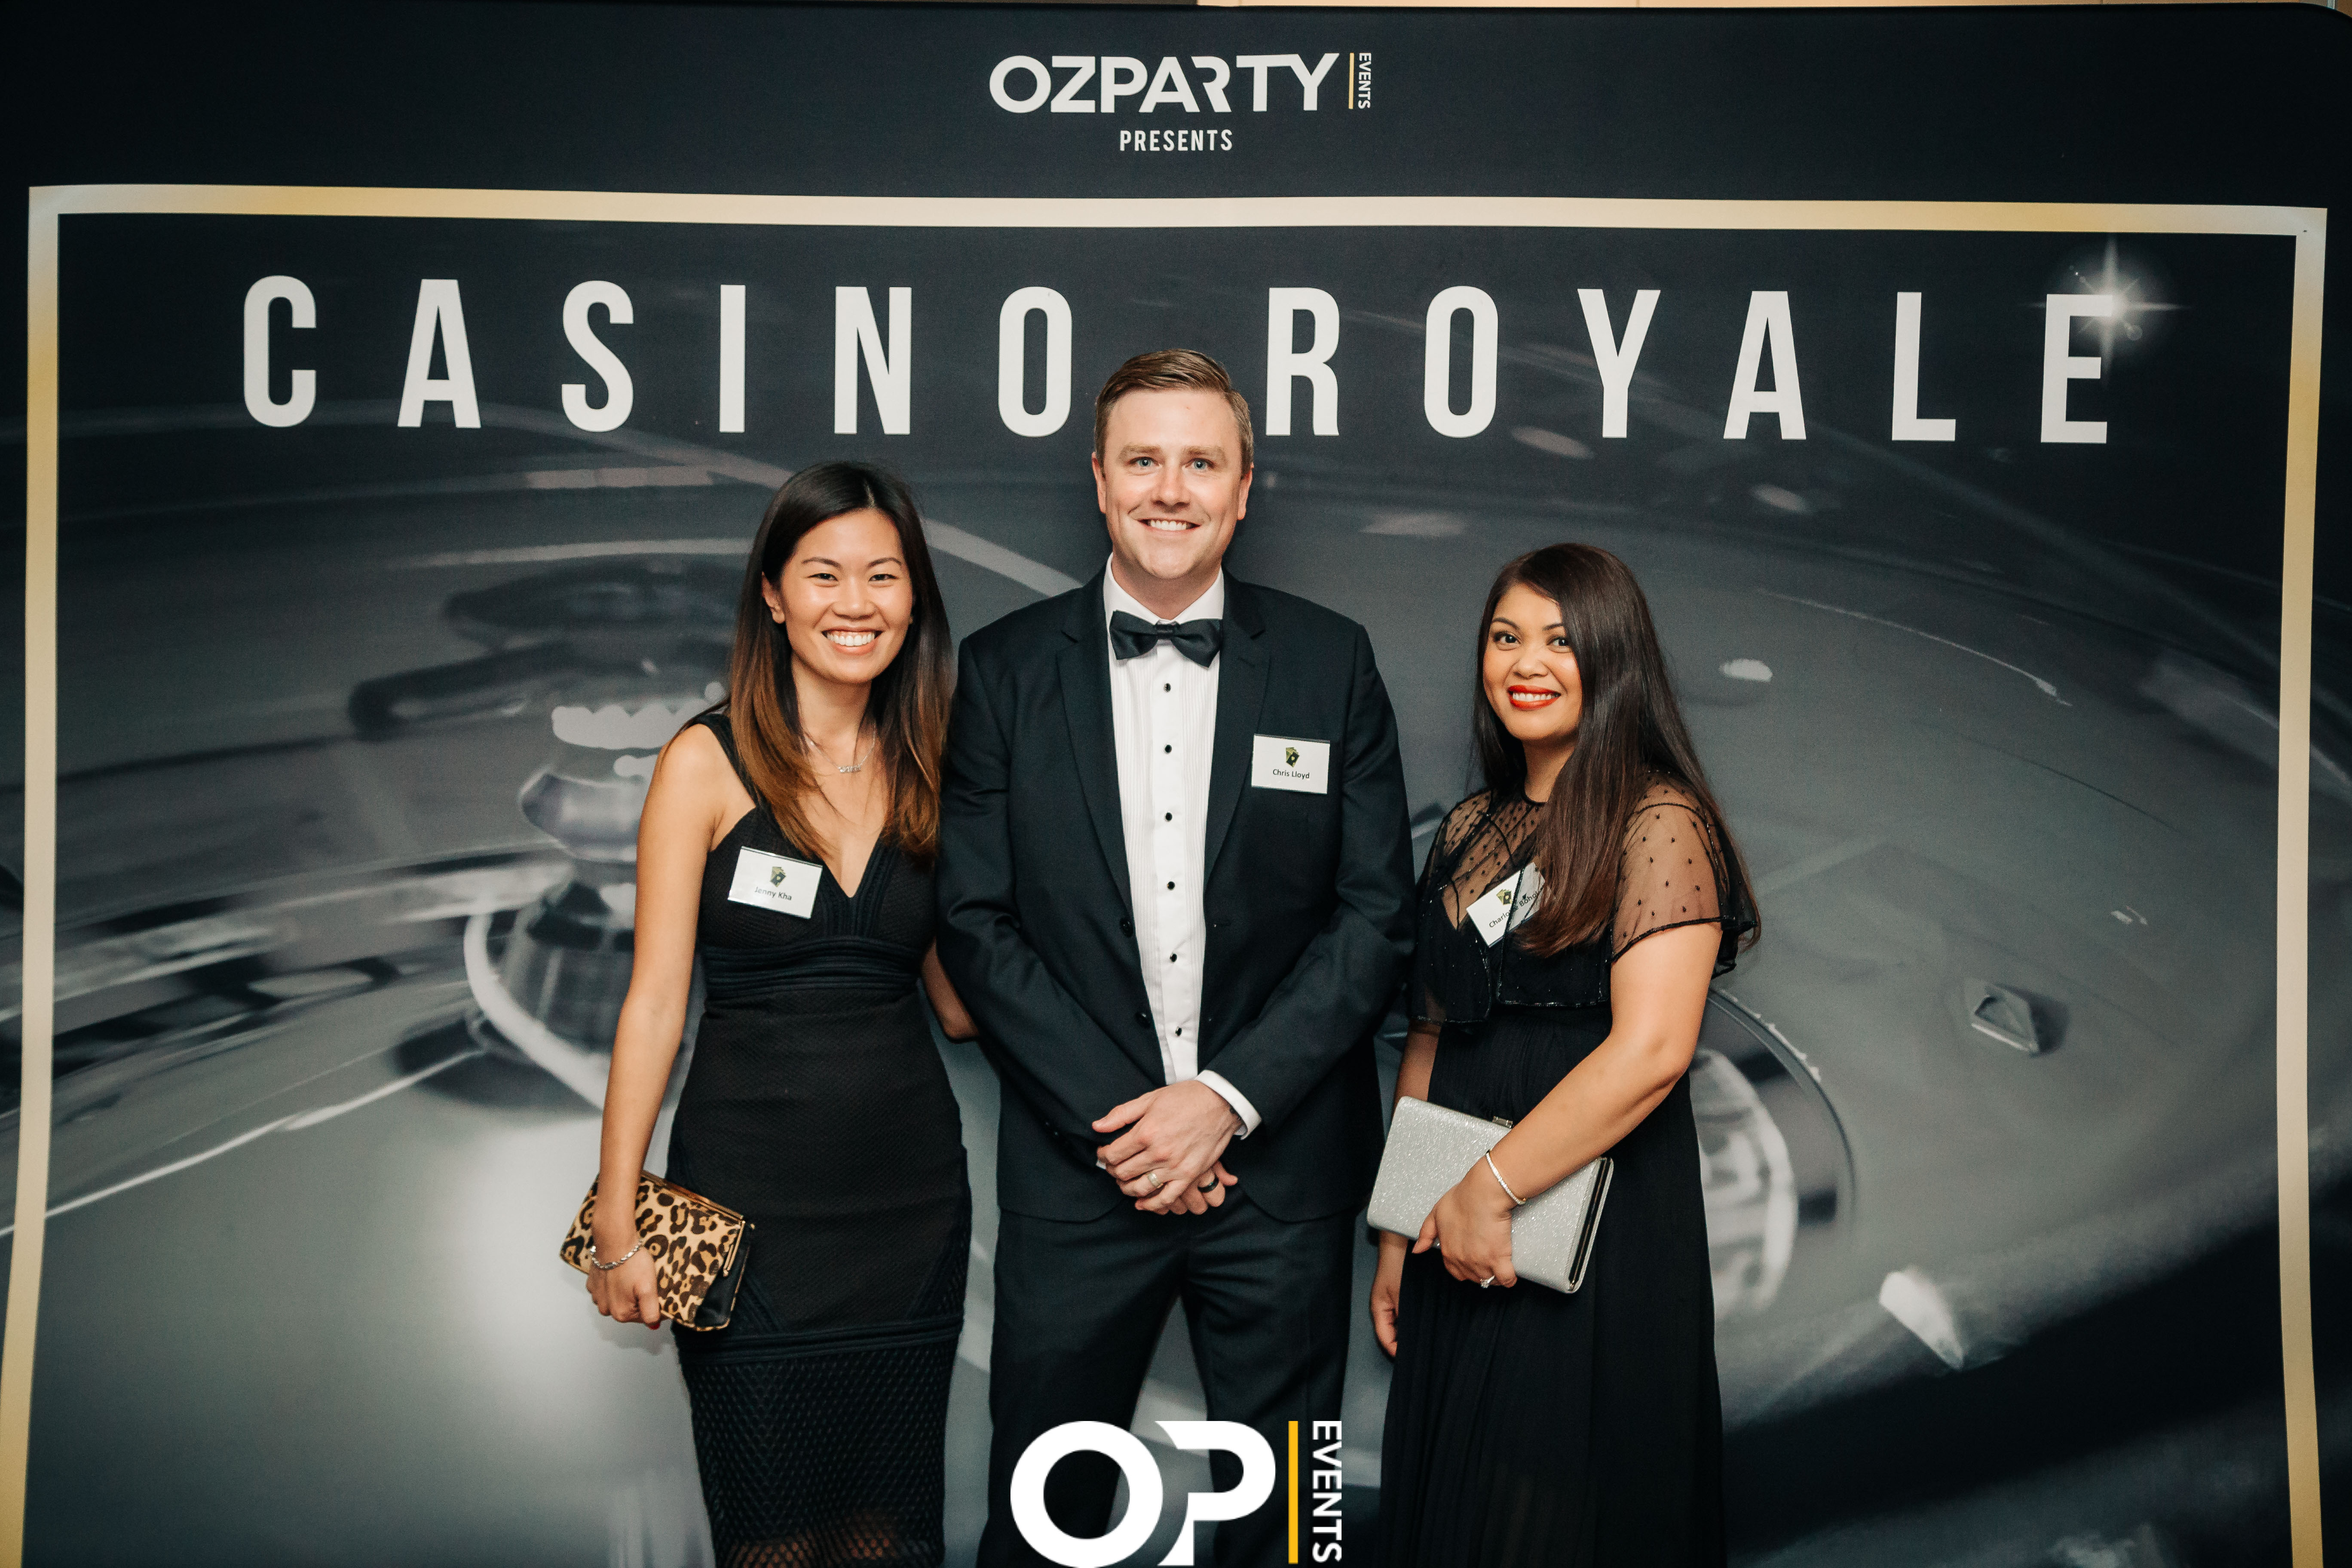 Casino Royal Mottoparty